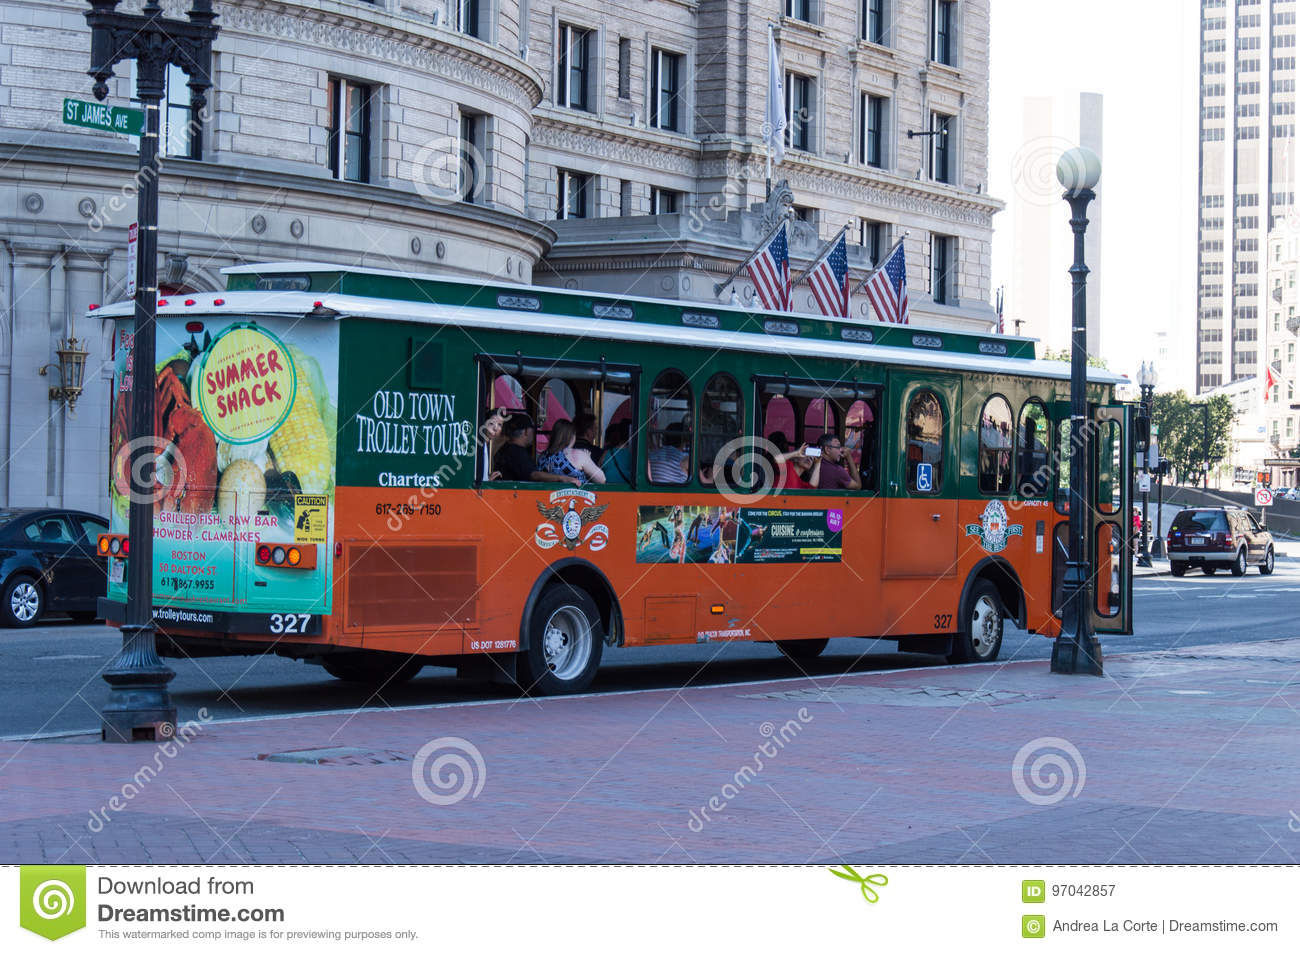 old town trolley tours boston map Boston Old Town Trolley Tours Editorial Photography Image Of old town trolley tours boston map